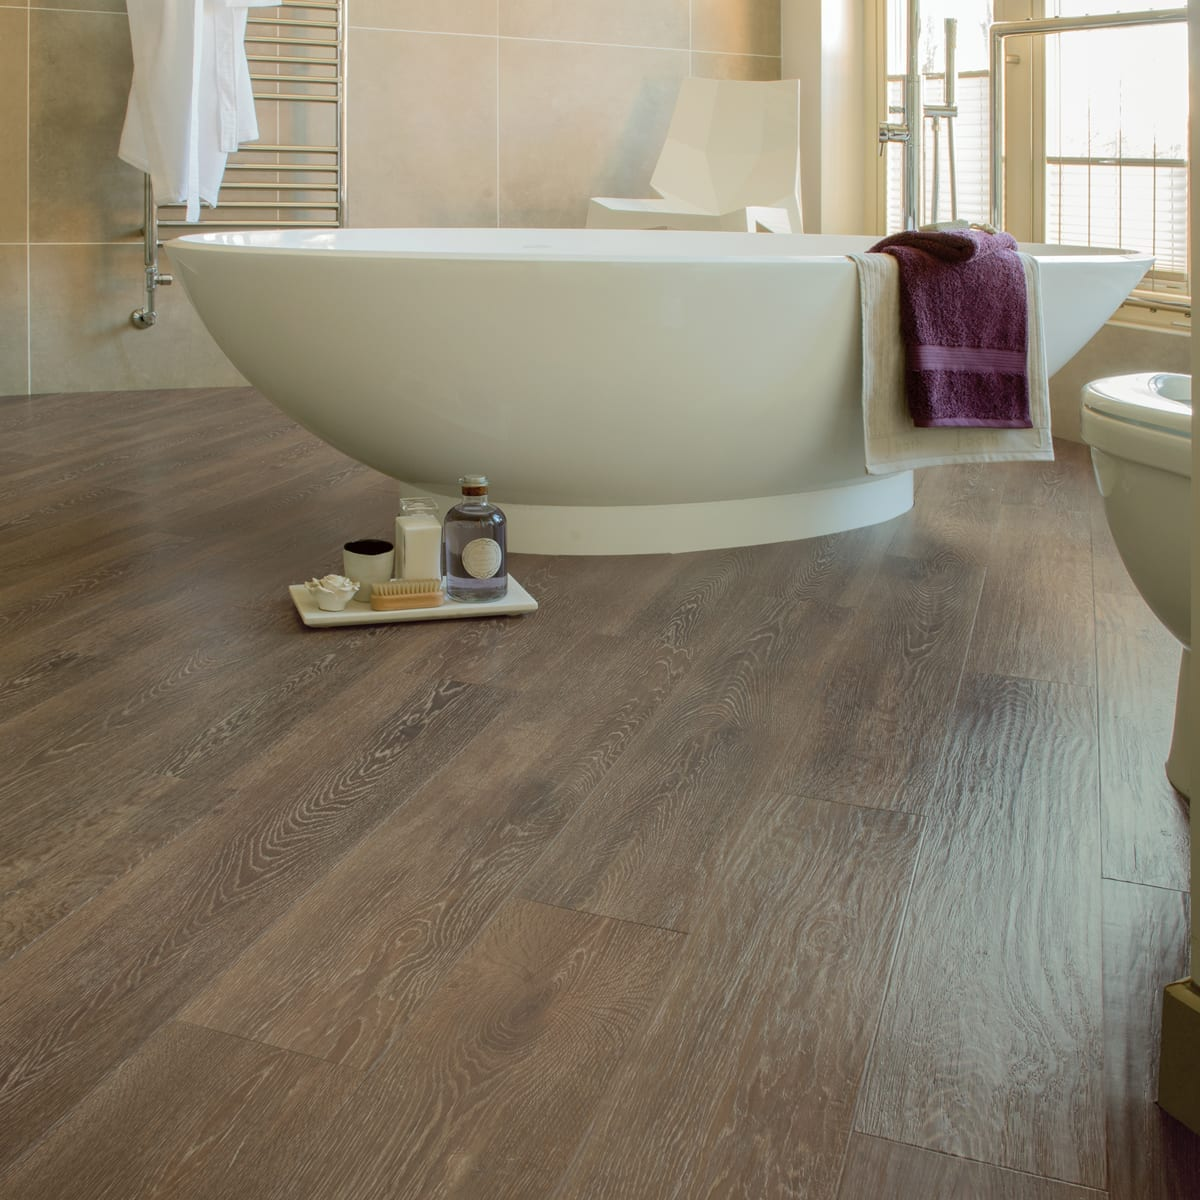 Floor Lino Bathroom: Karndean Art Select Oak Premier Vinyl Plank Flooring